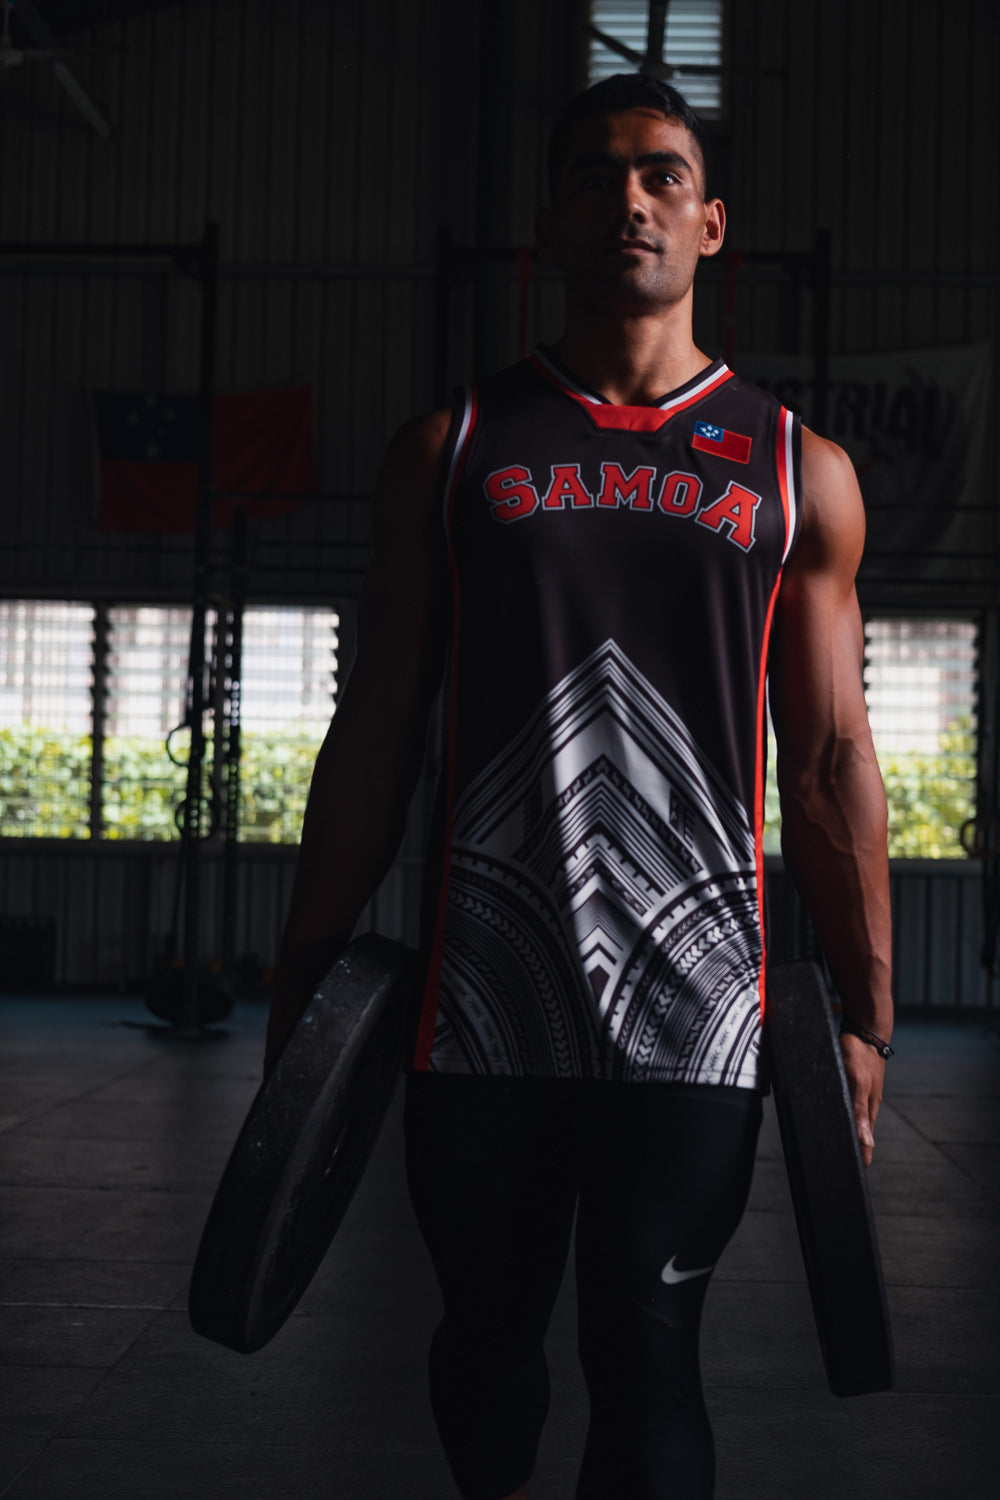 SAMOA62 Original Basketball Jersey - Black/White